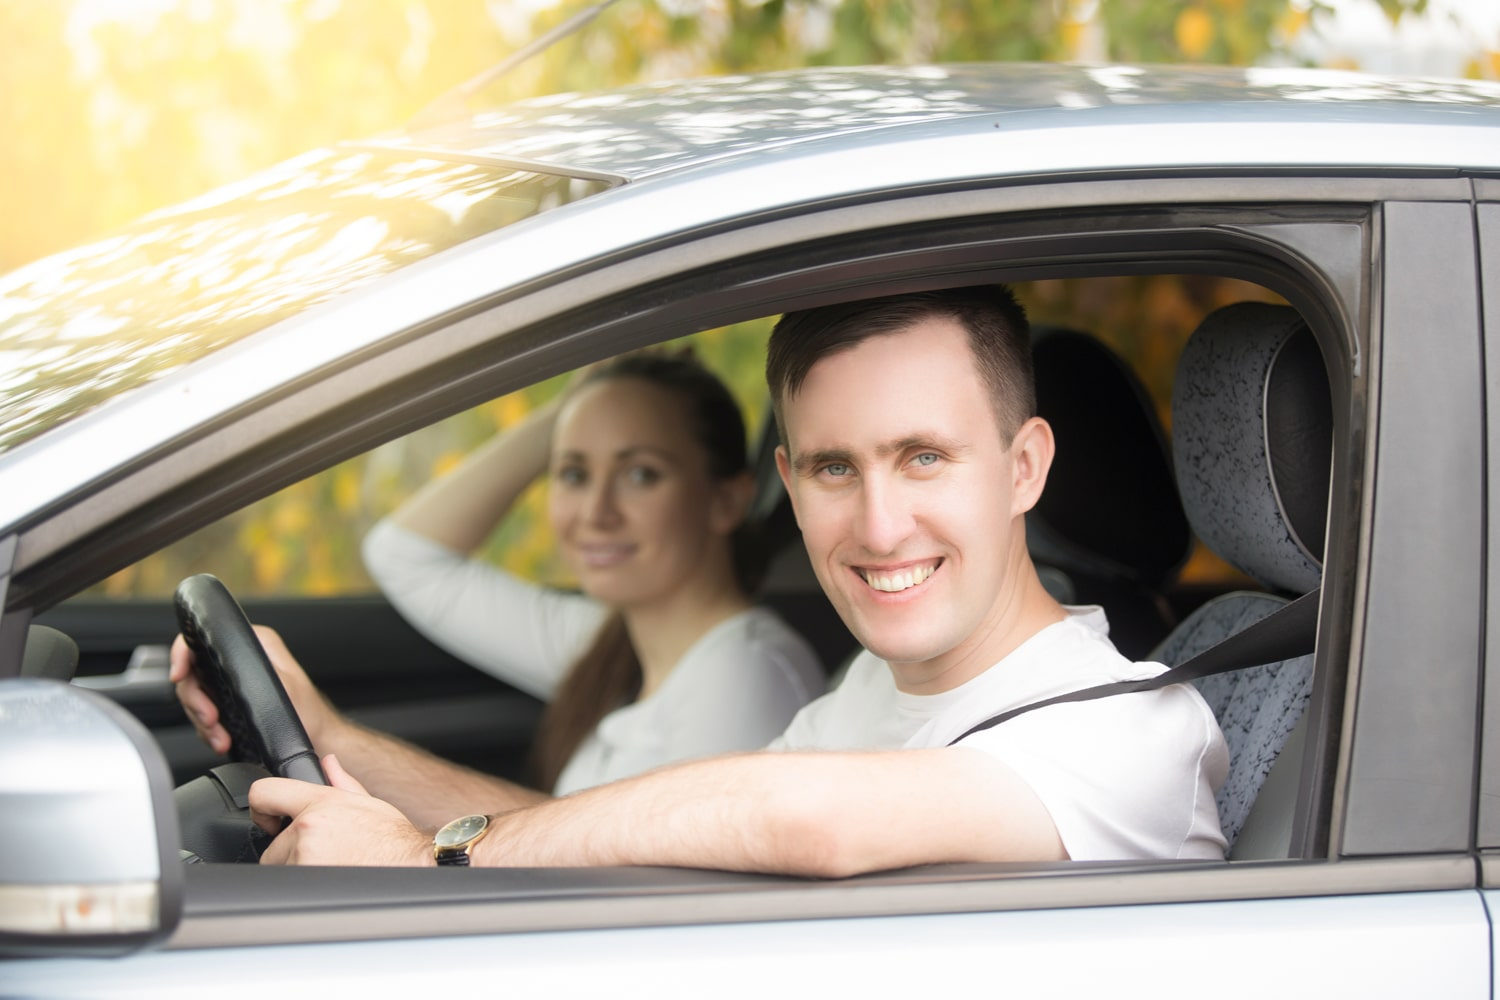 Driver smiling with passenger